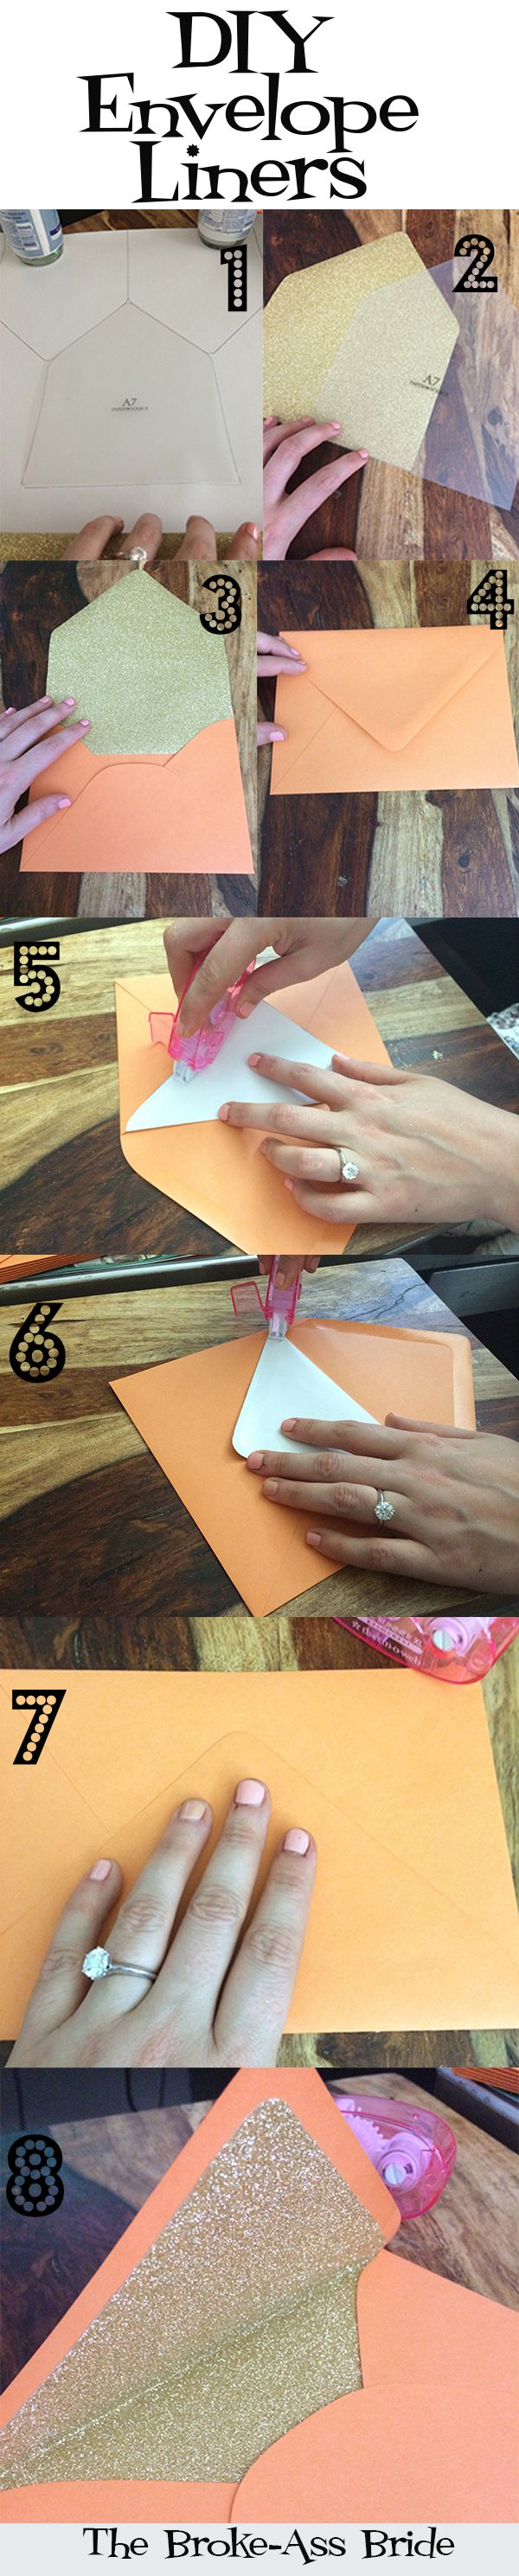 Best of 2014: DIY or DIE: Custom Envelope Liners Full of Sparkle